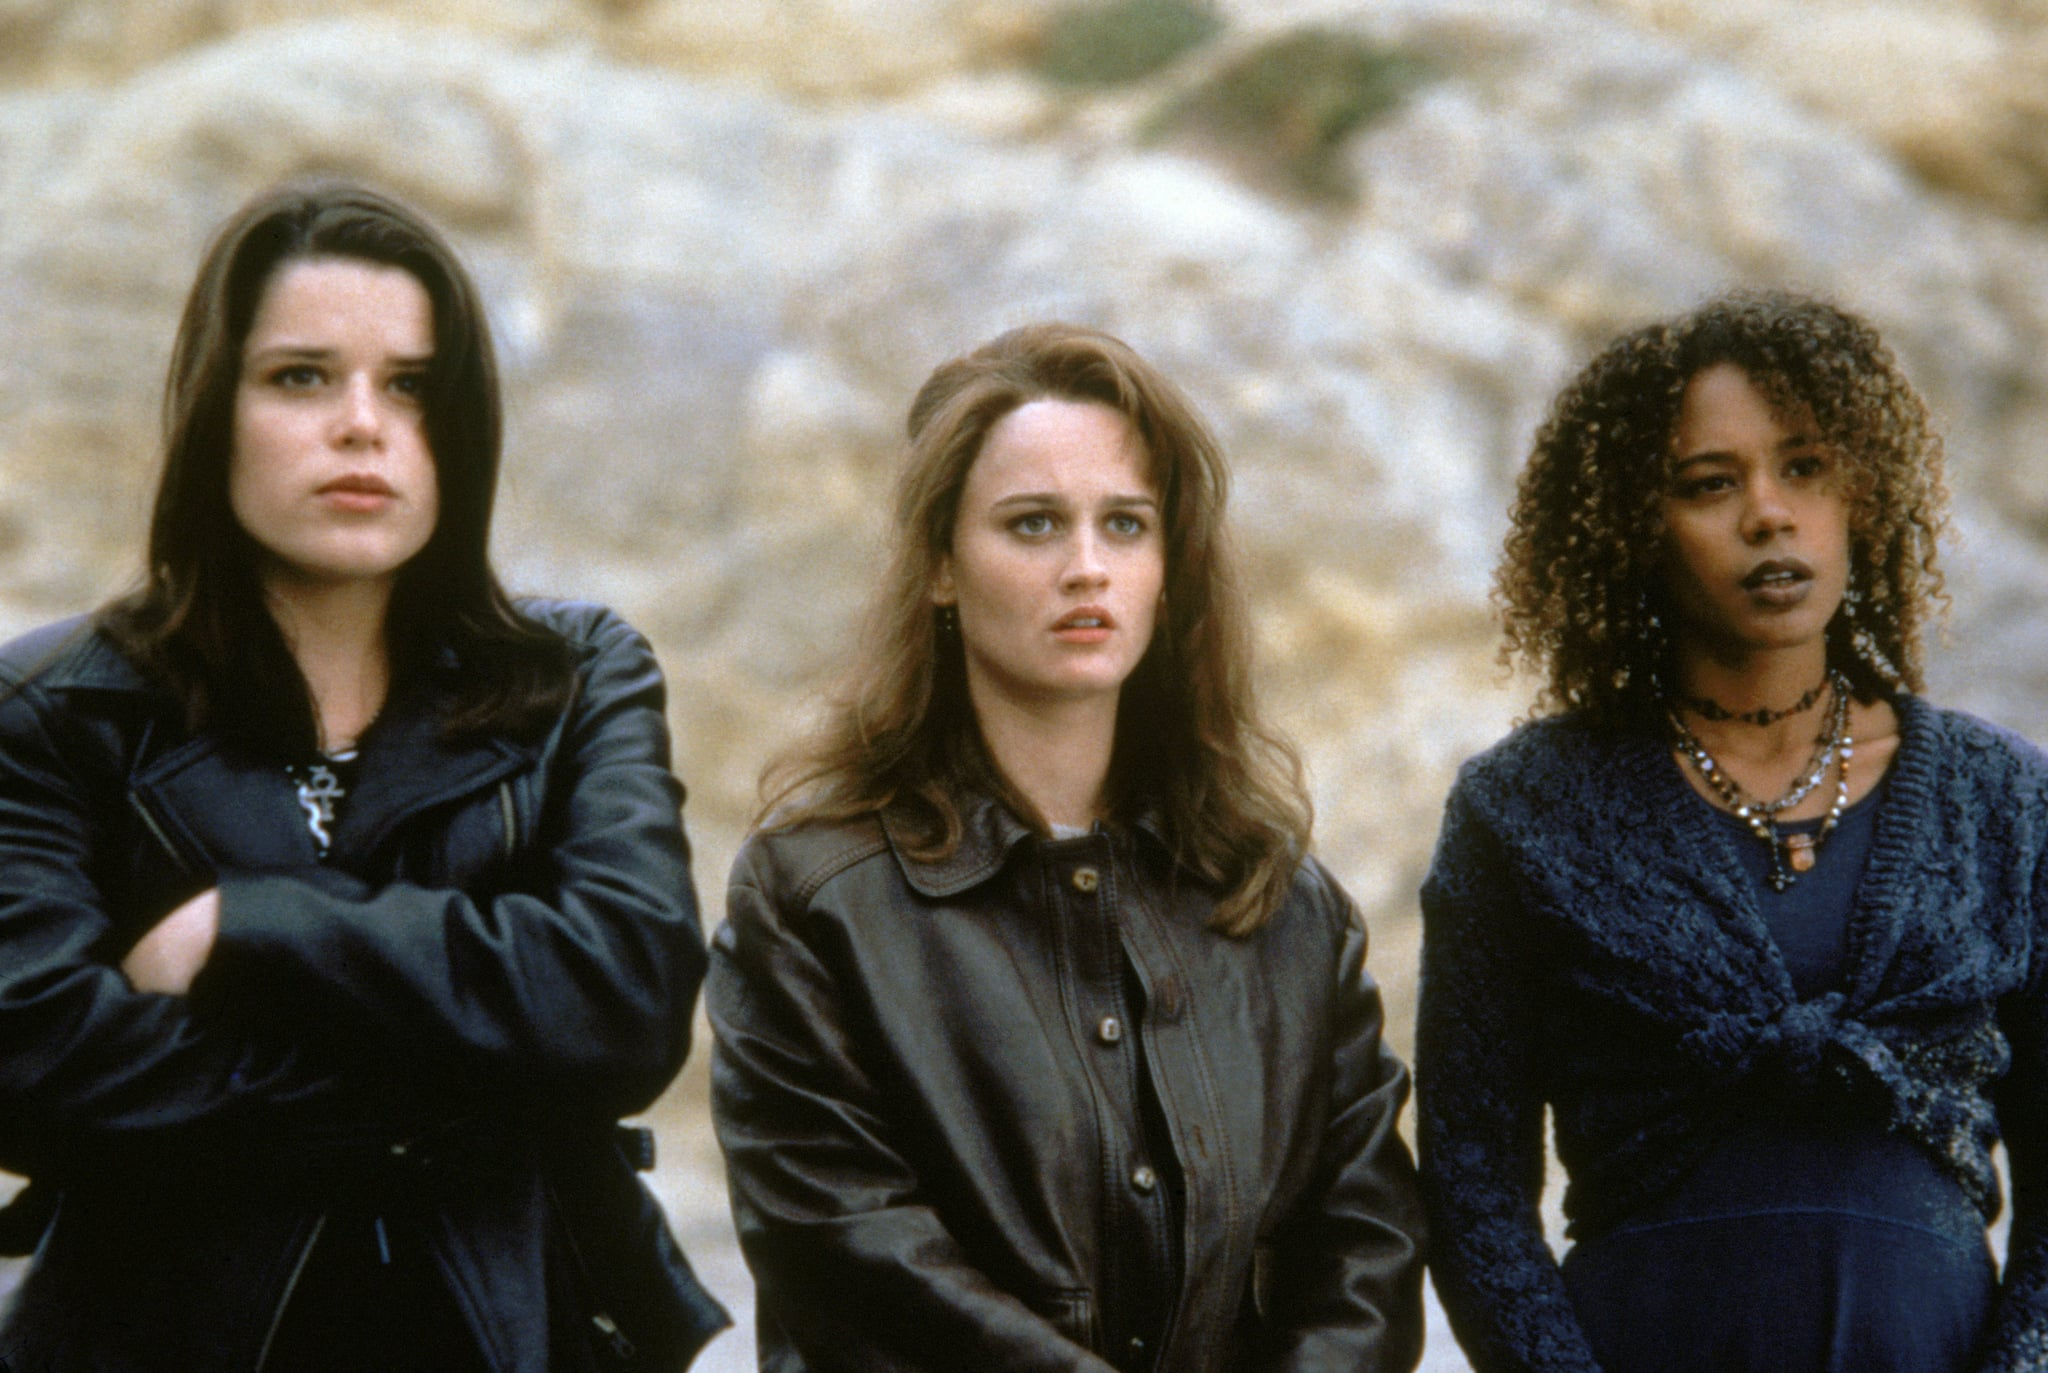 The Craft remake is happening with horror team Blumhouse Productions